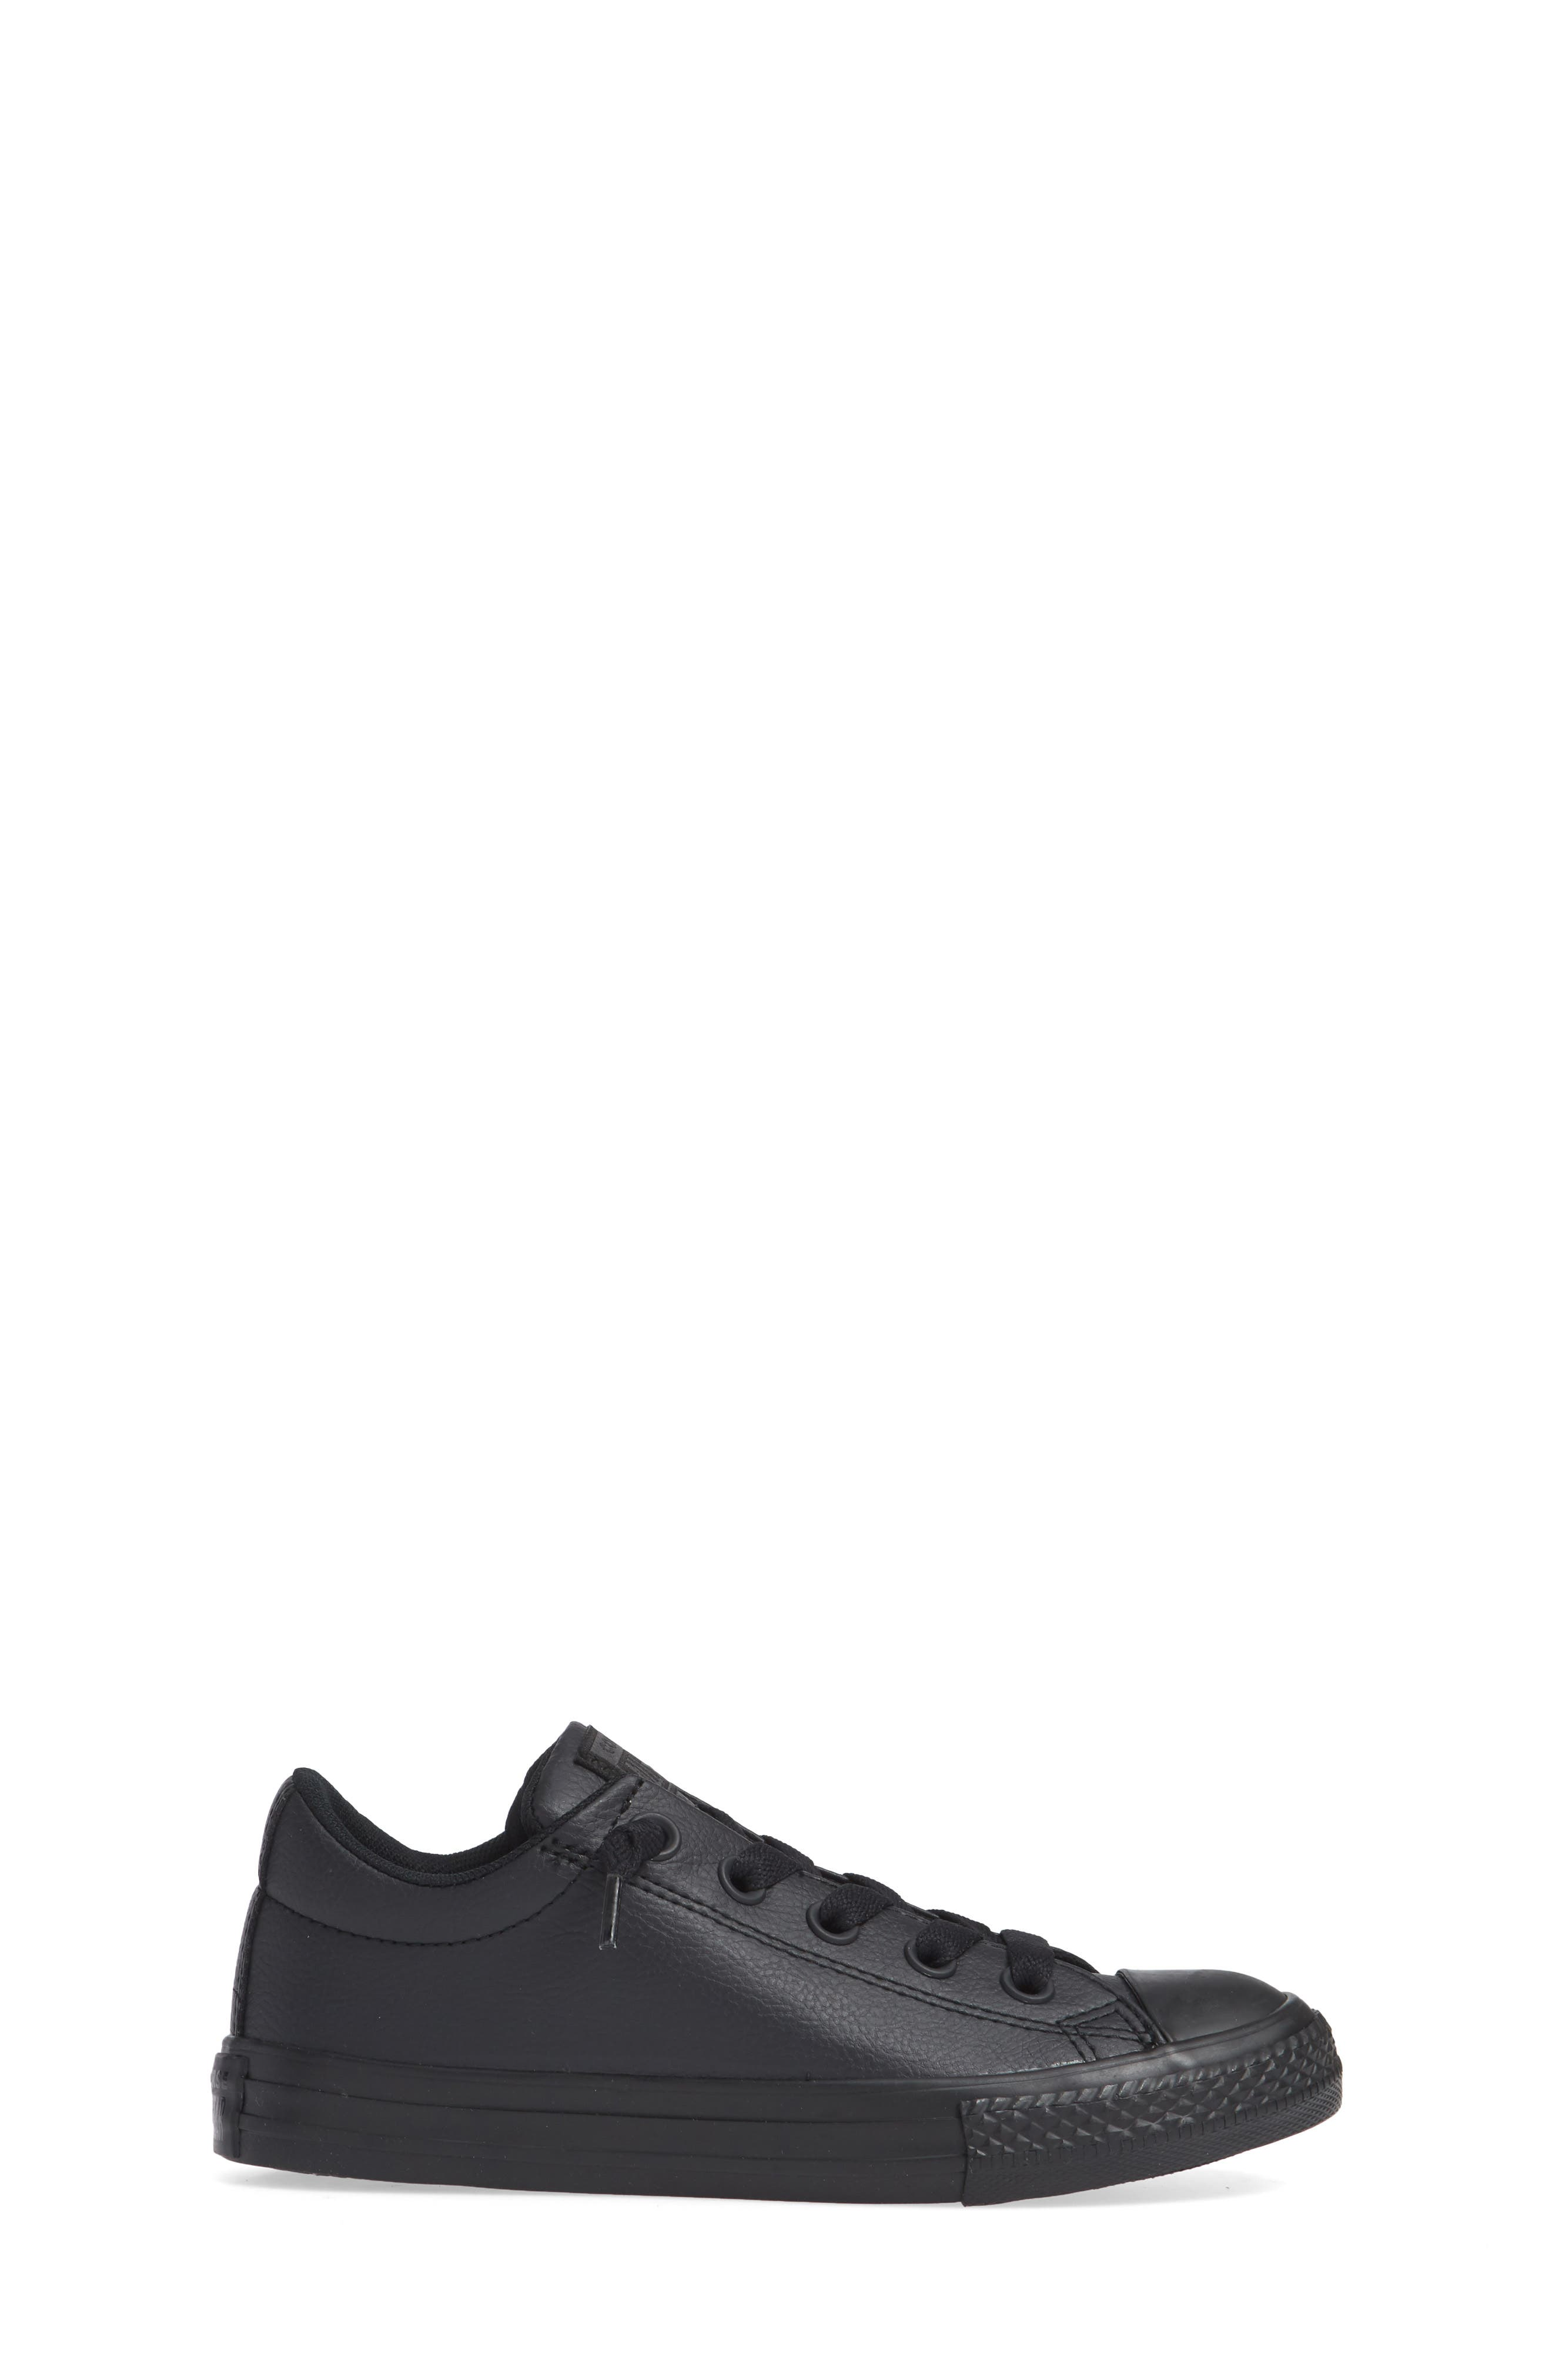 CONVERSE, Chuck Taylor<sup>®</sup> All Star<sup>®</sup> 'Street Ox' Sneaker, Alternate thumbnail 3, color, BLACK MONO